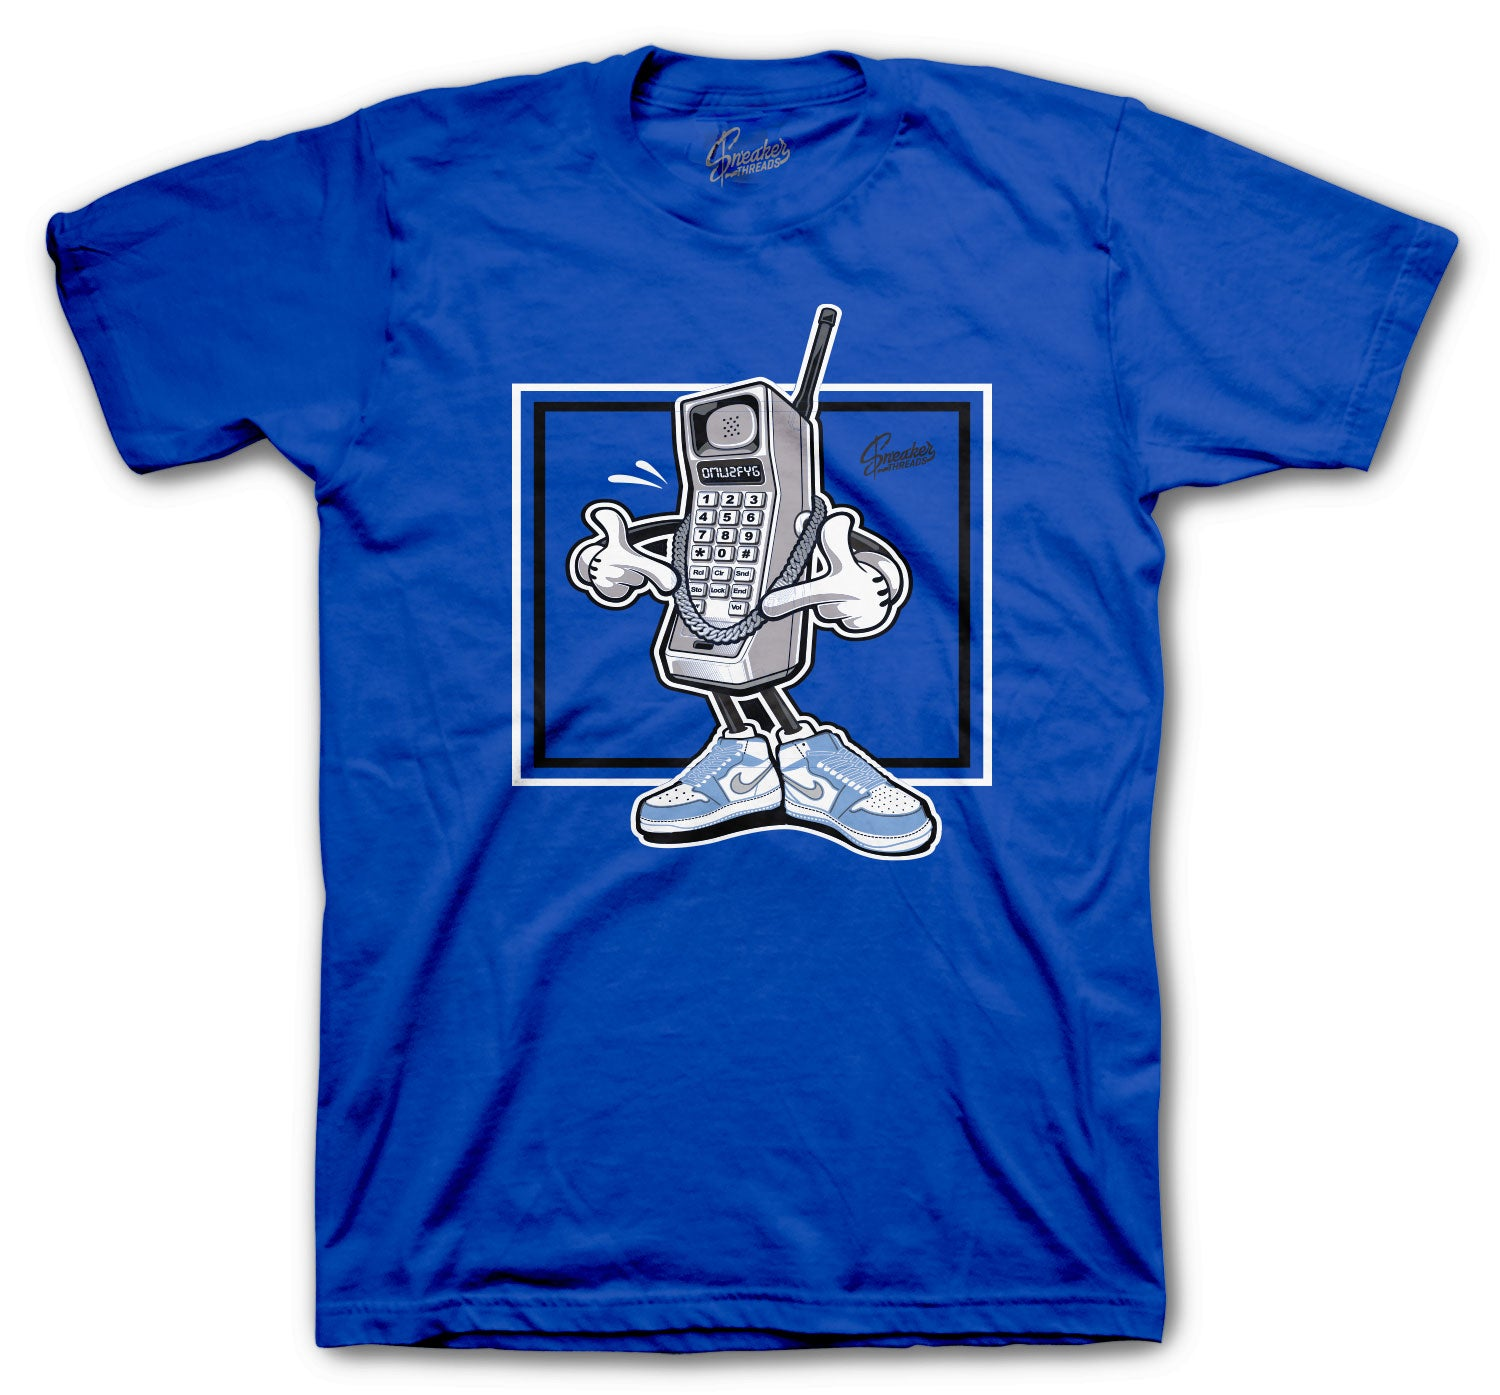 Jordan 1 Hyper Royal Shirt - Hustle Phone - Royal